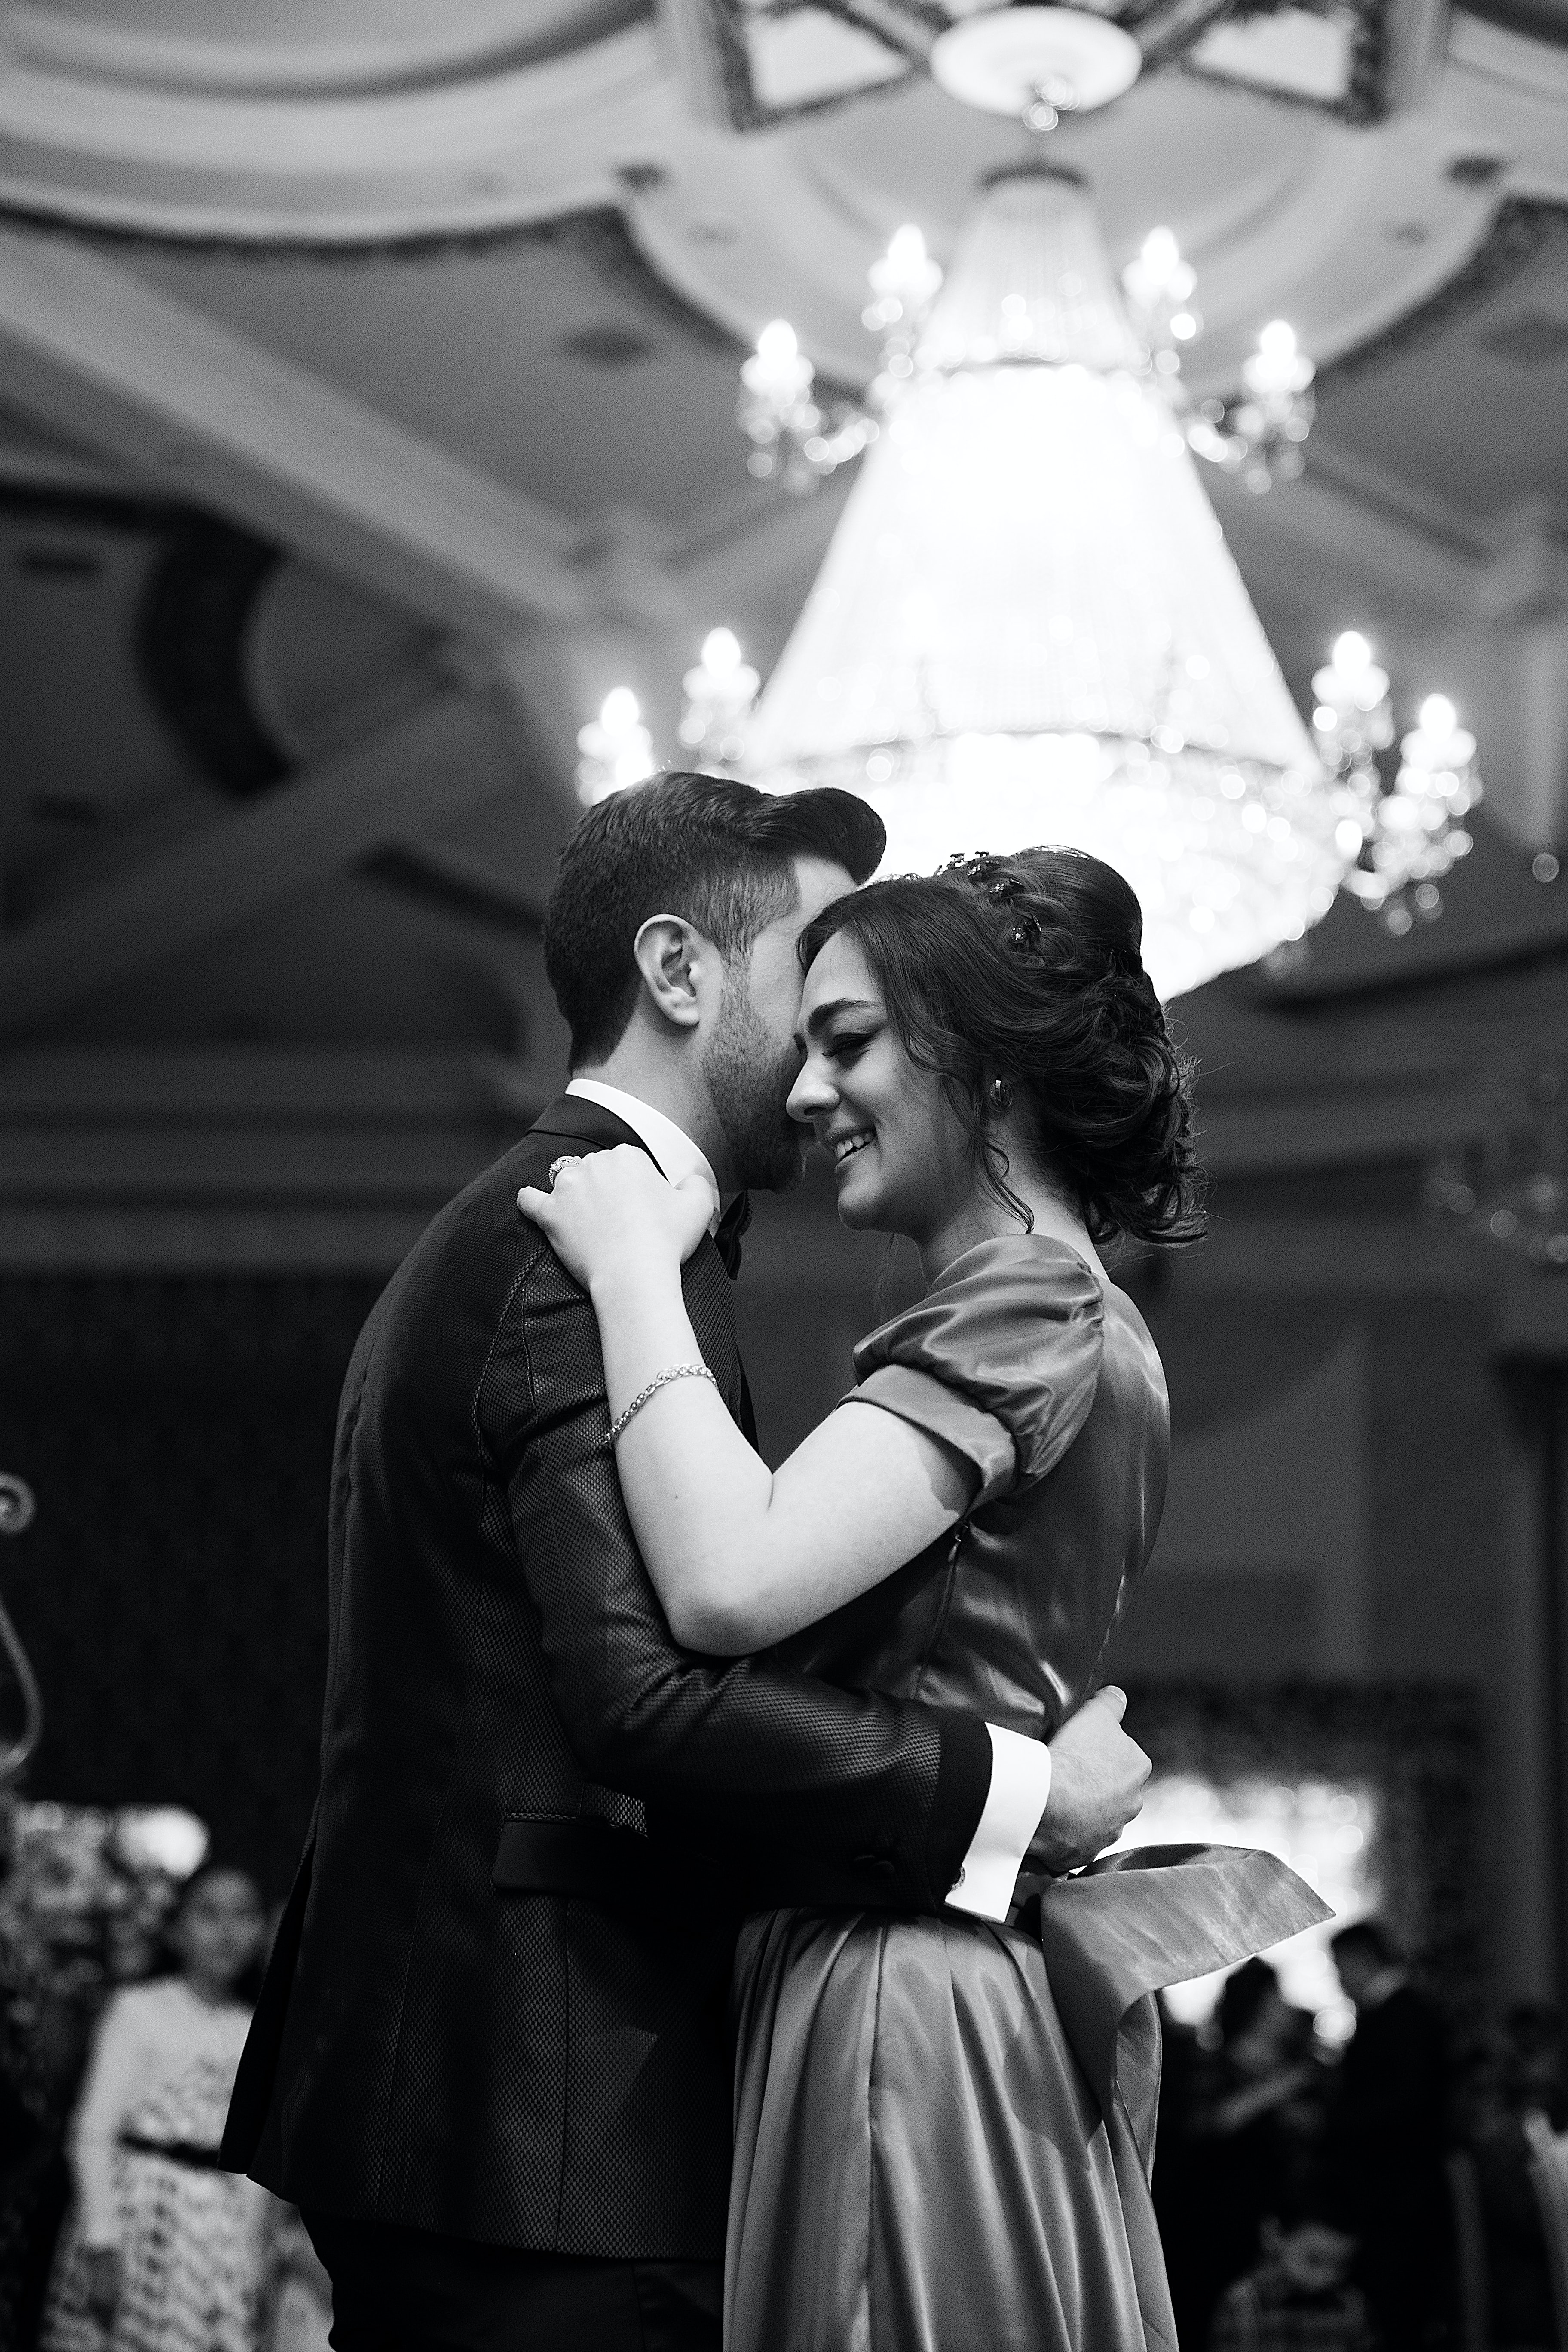 Couple Dance Pictures Download Free Images On Unsplash